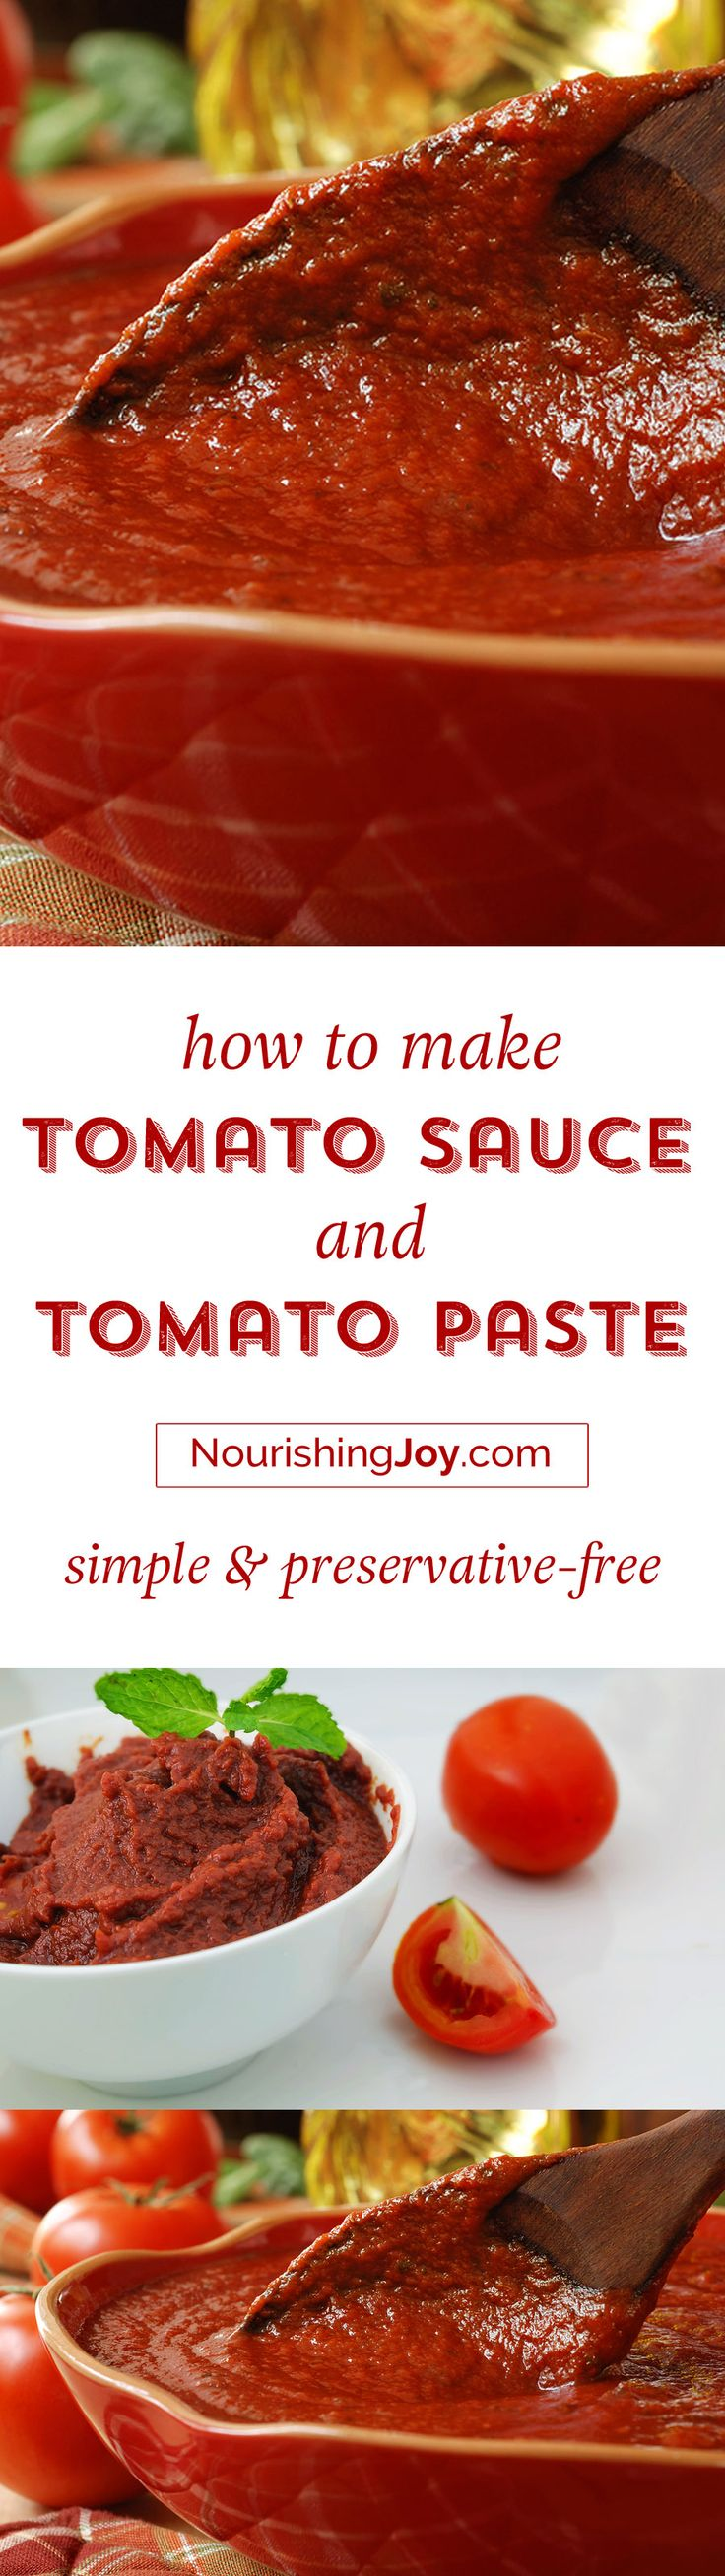 Knowing how to make homemade tomato sauce and how to make tomato paste can make… (Best Pasta How To Make)